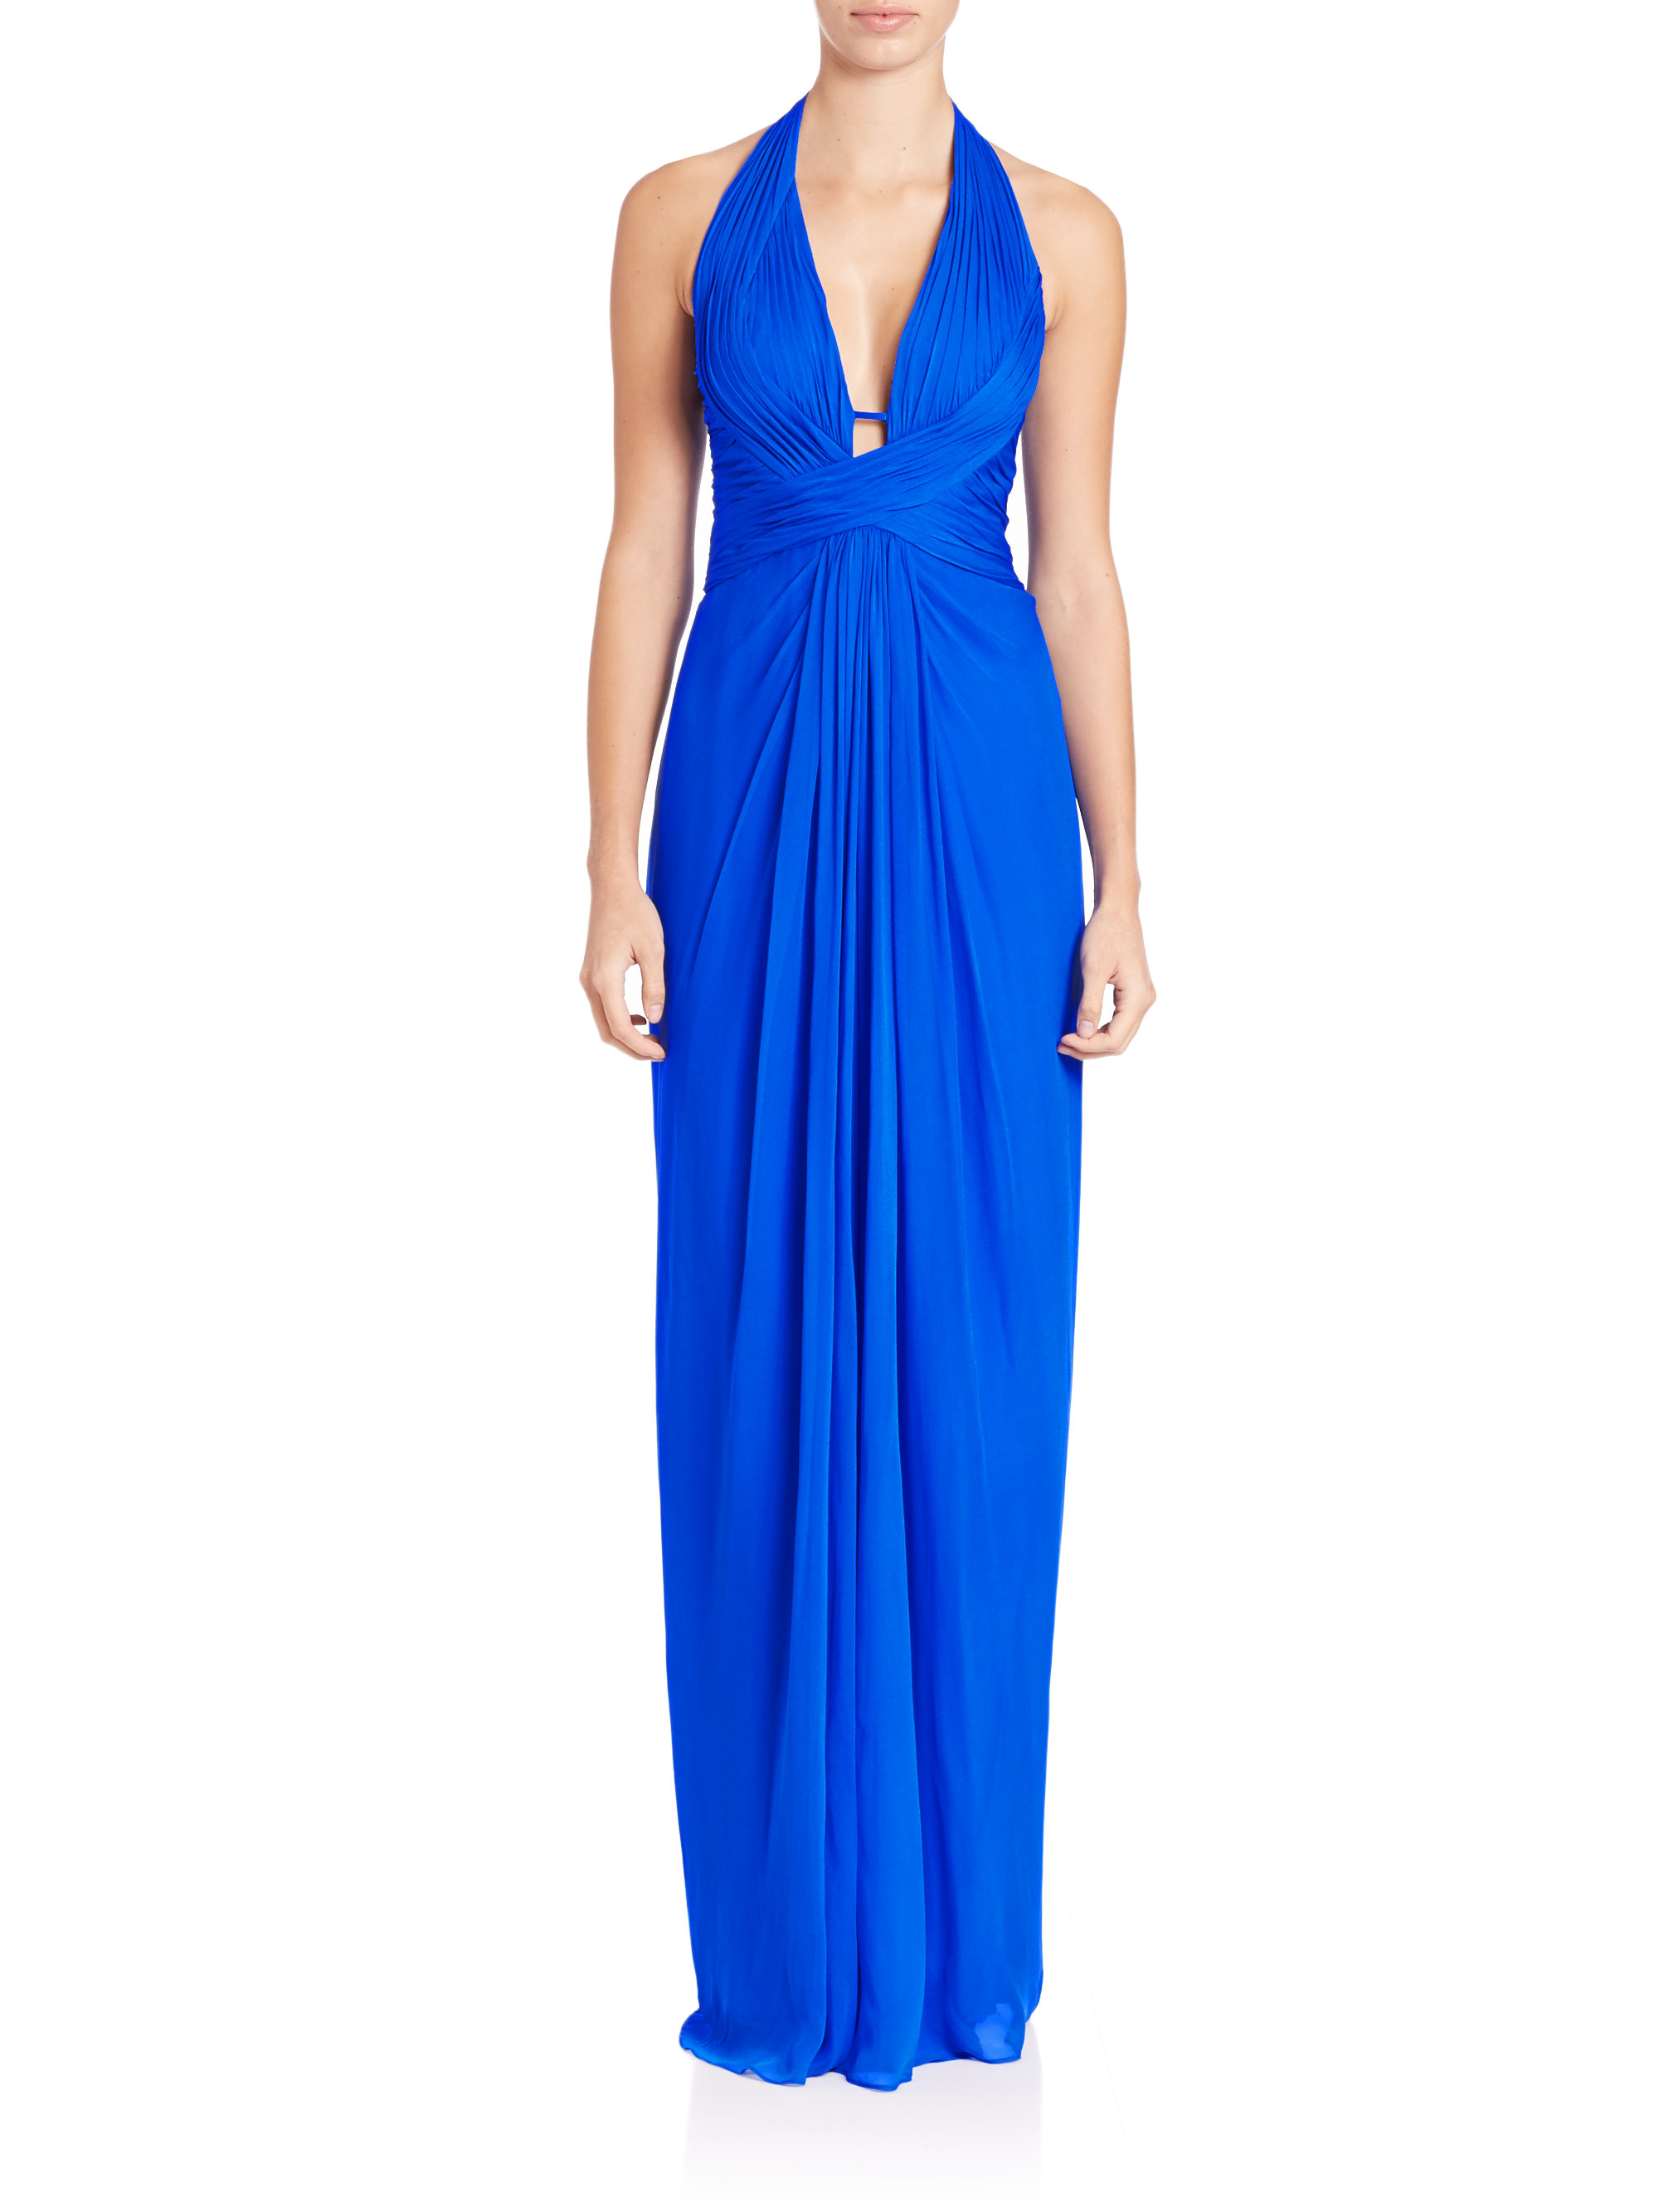 Aidan mattox Draped Halter Silk Chiffon Gown in Blue | Lyst